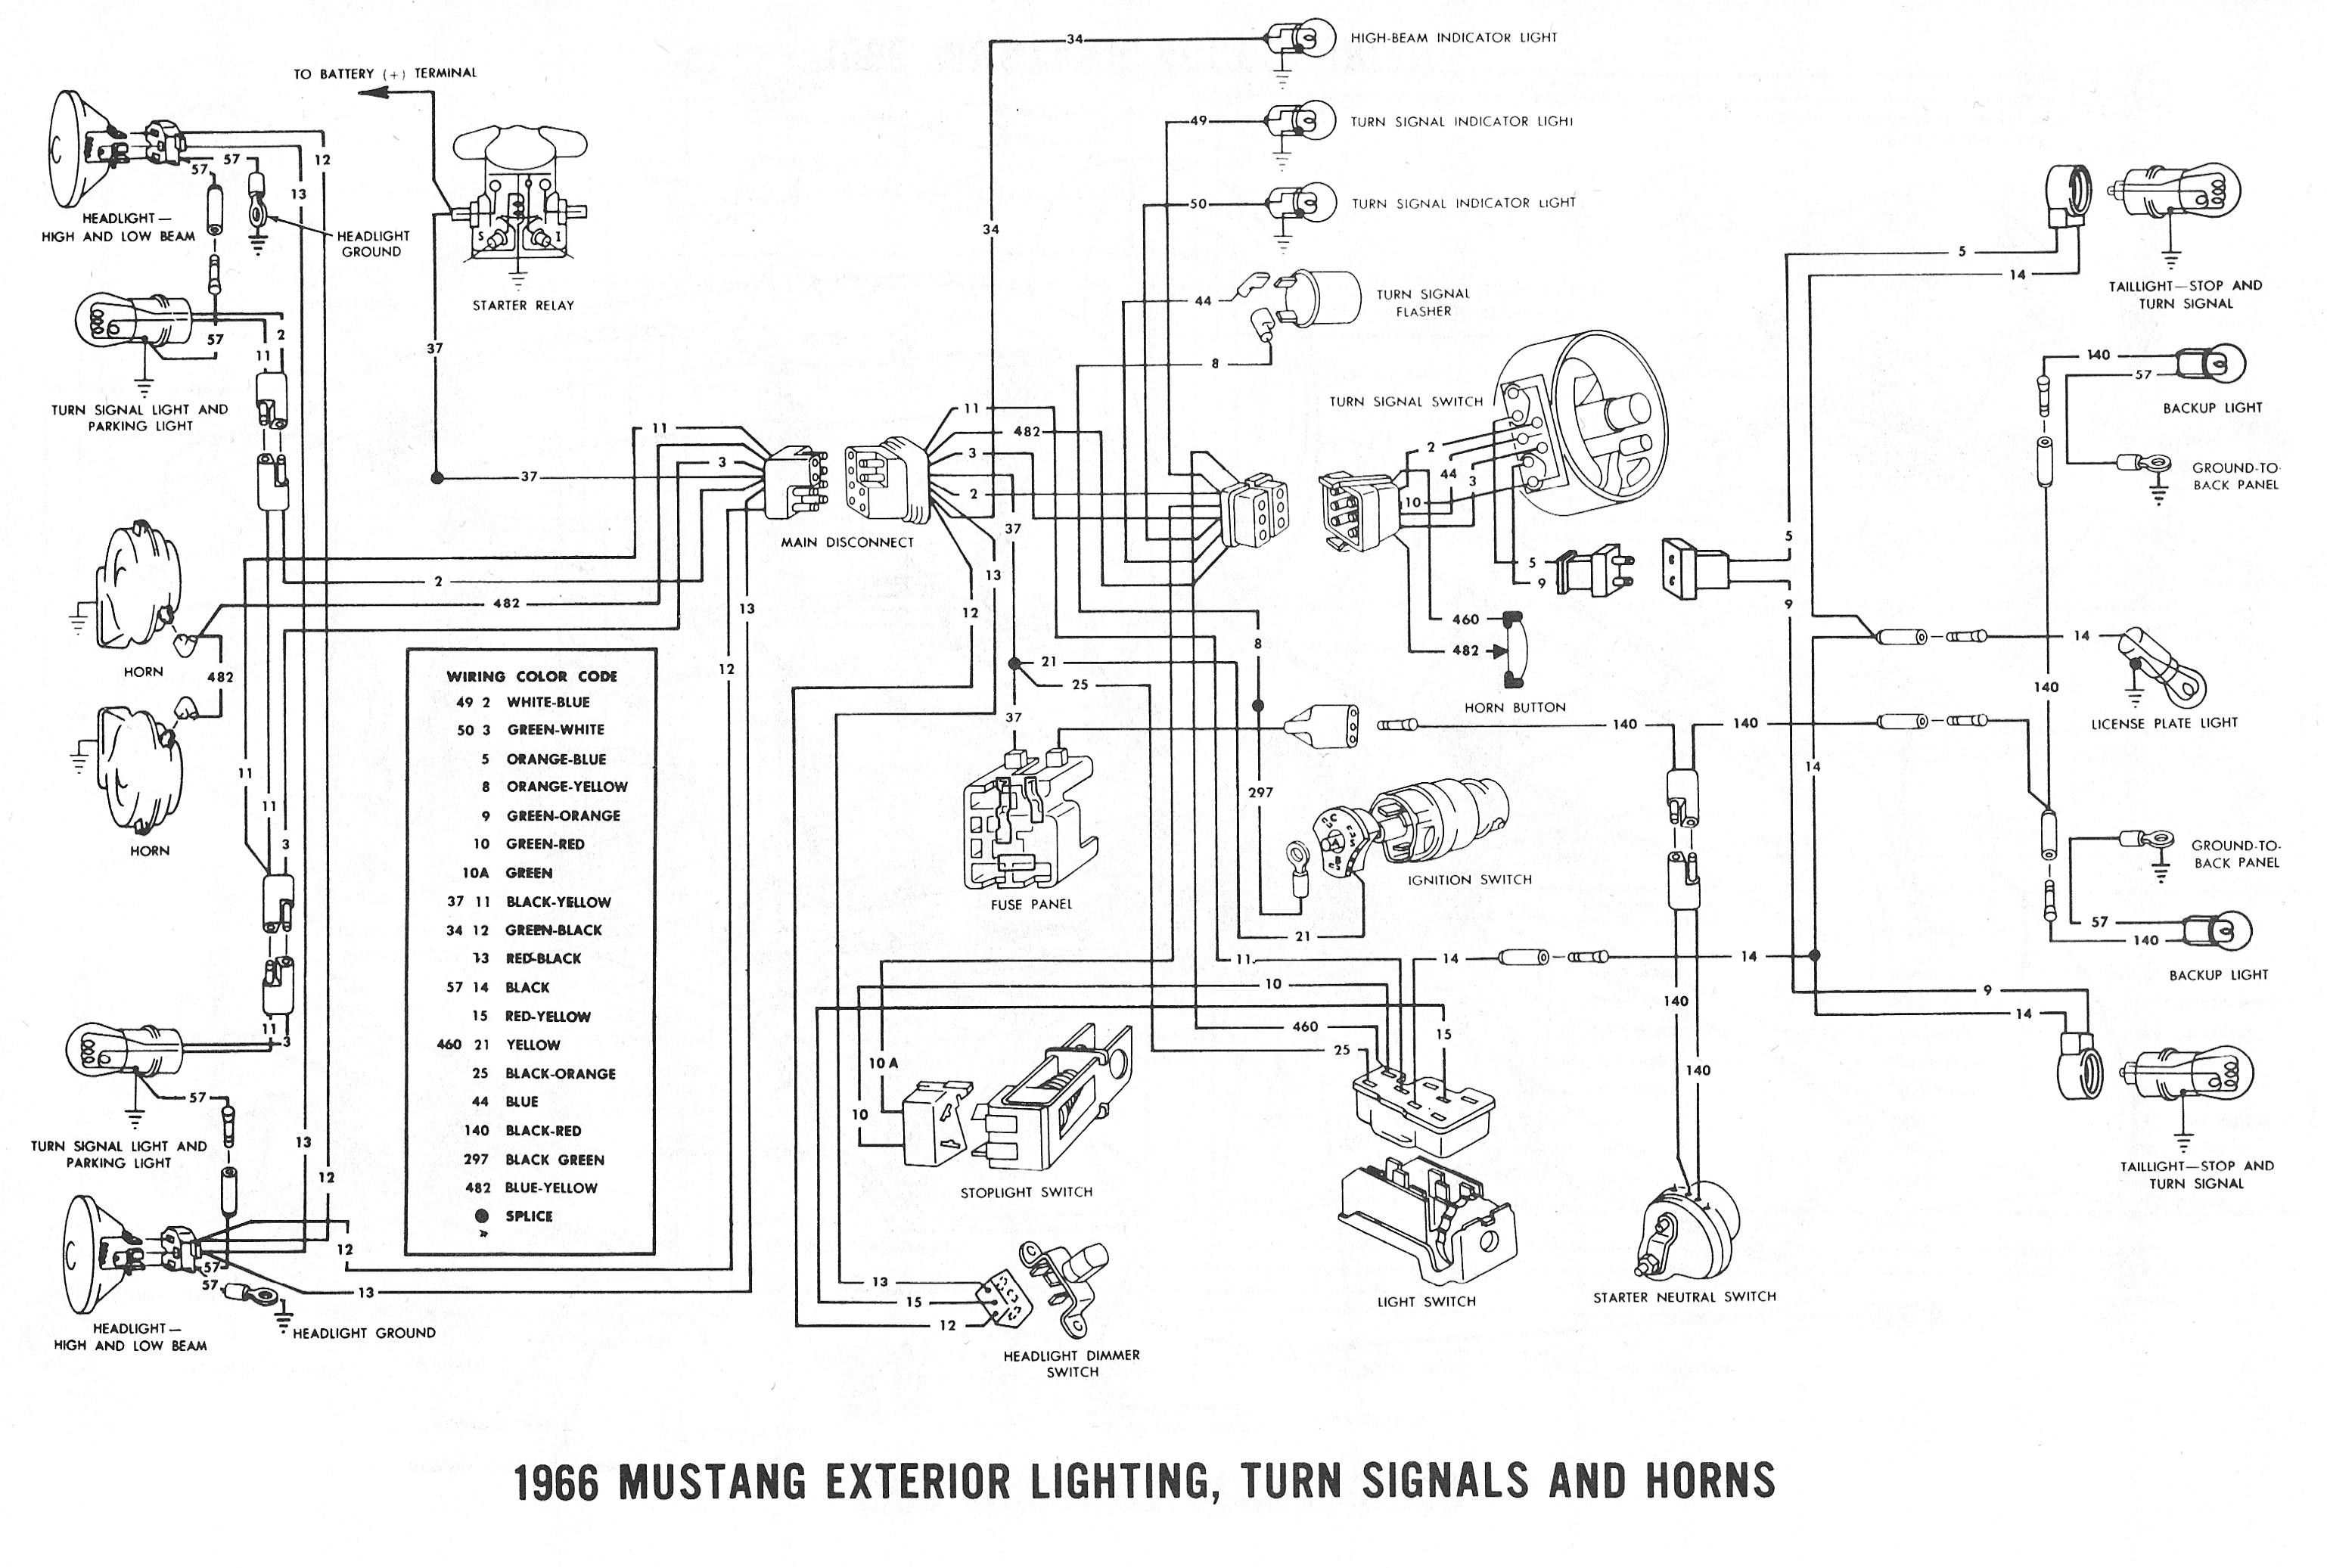 Oliver 66 Wiring Diagram | Wiring Diagram AutoVehicle on oliver ignition diagram, oliver parts diagram, oliver tractor,